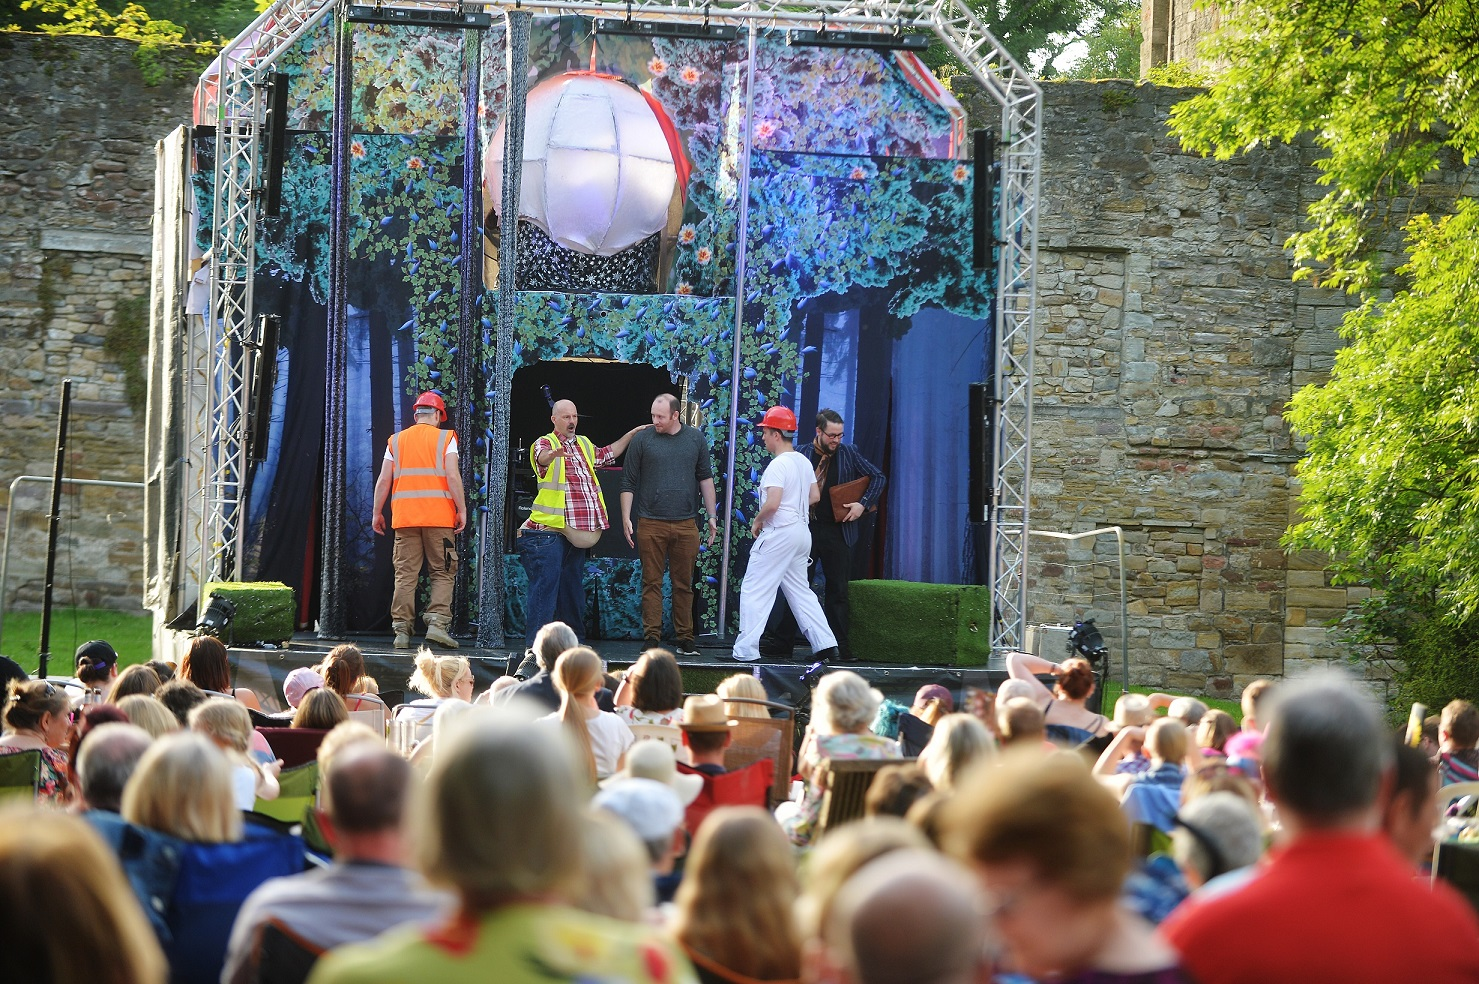 Oddsocks perform A Midsummer Nights Dream in Workington